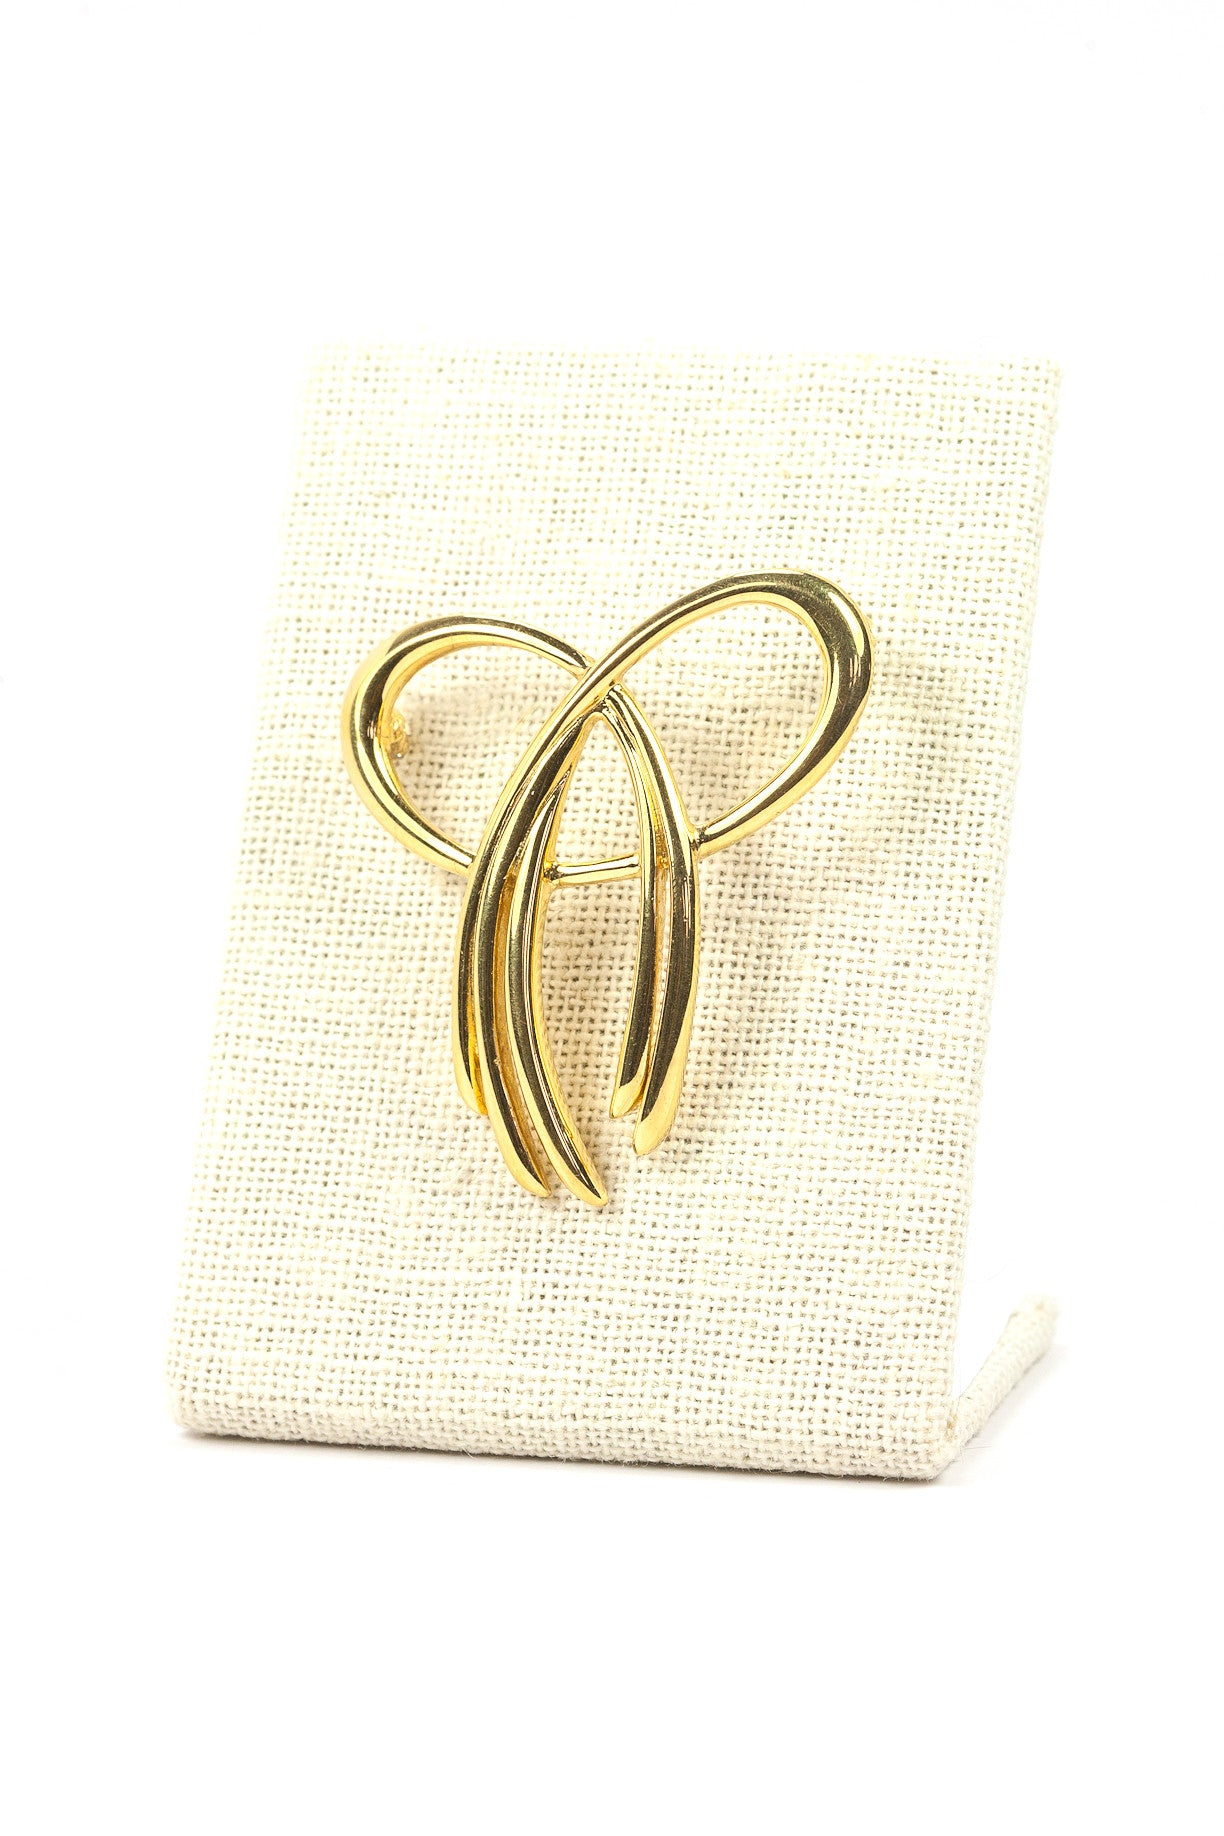 60's__Trifari__Simple Ribbon Brooch